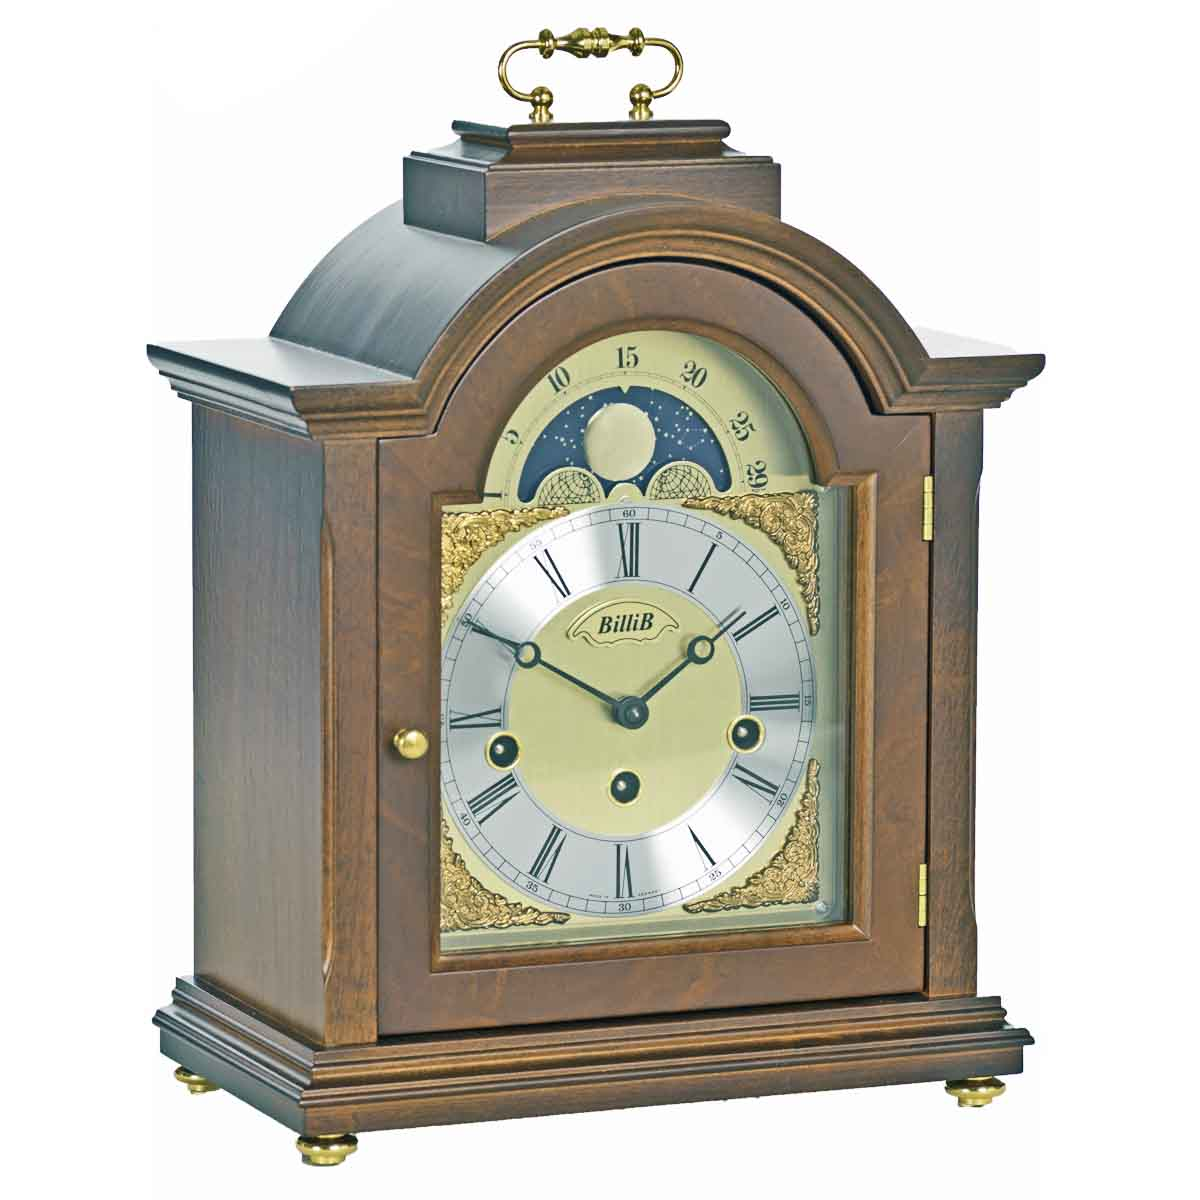 LINTON WalnutFinish Mantel Table Clock